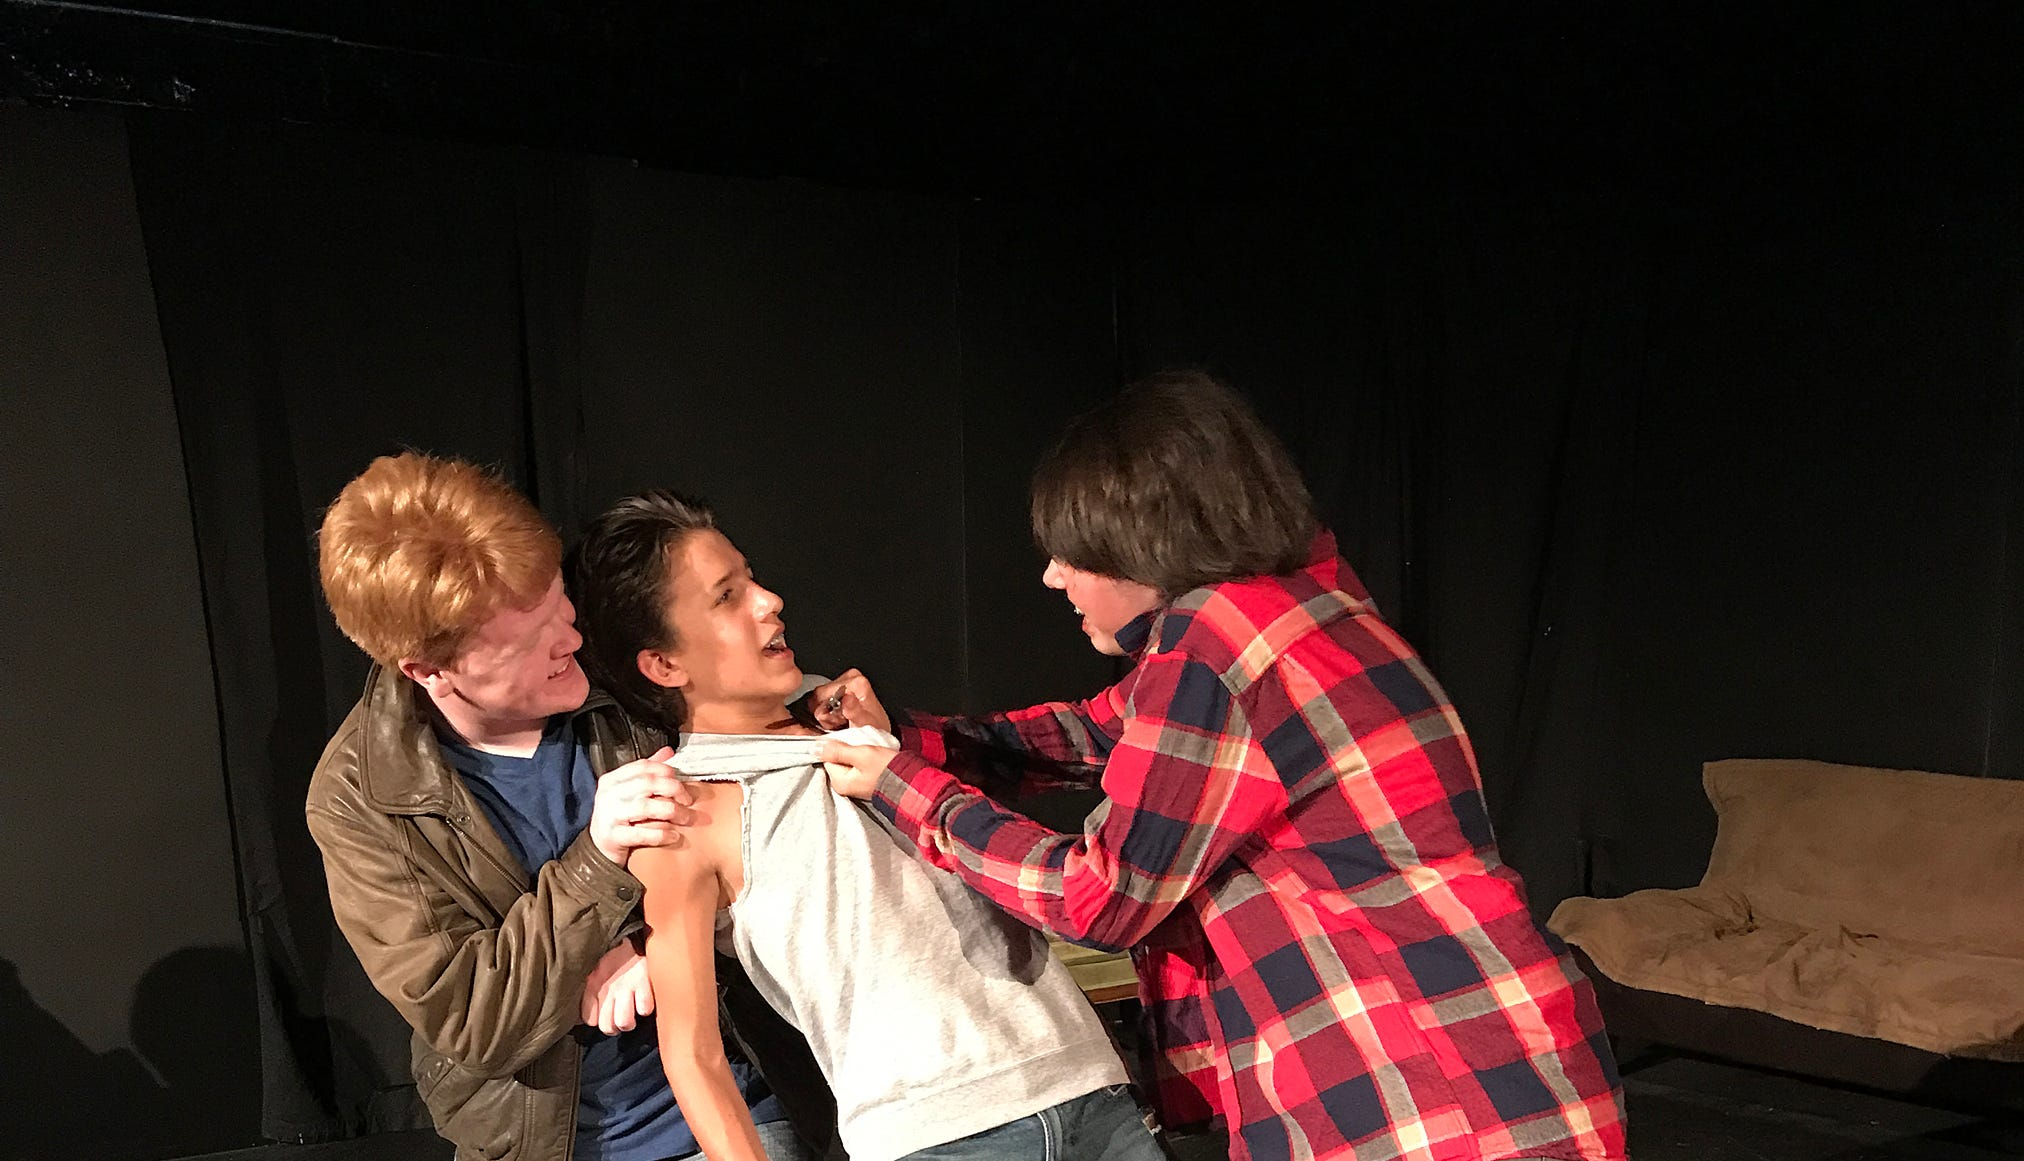 """Rival gang members Randy (Kyle Thompson), left, and Bob (Robert Burke), right, challenge Ponyboy Curtis (Jessie Lane Jr.) in a scene from """"The Outsiders."""" The coming-of-age drama opens Aug. 3."""